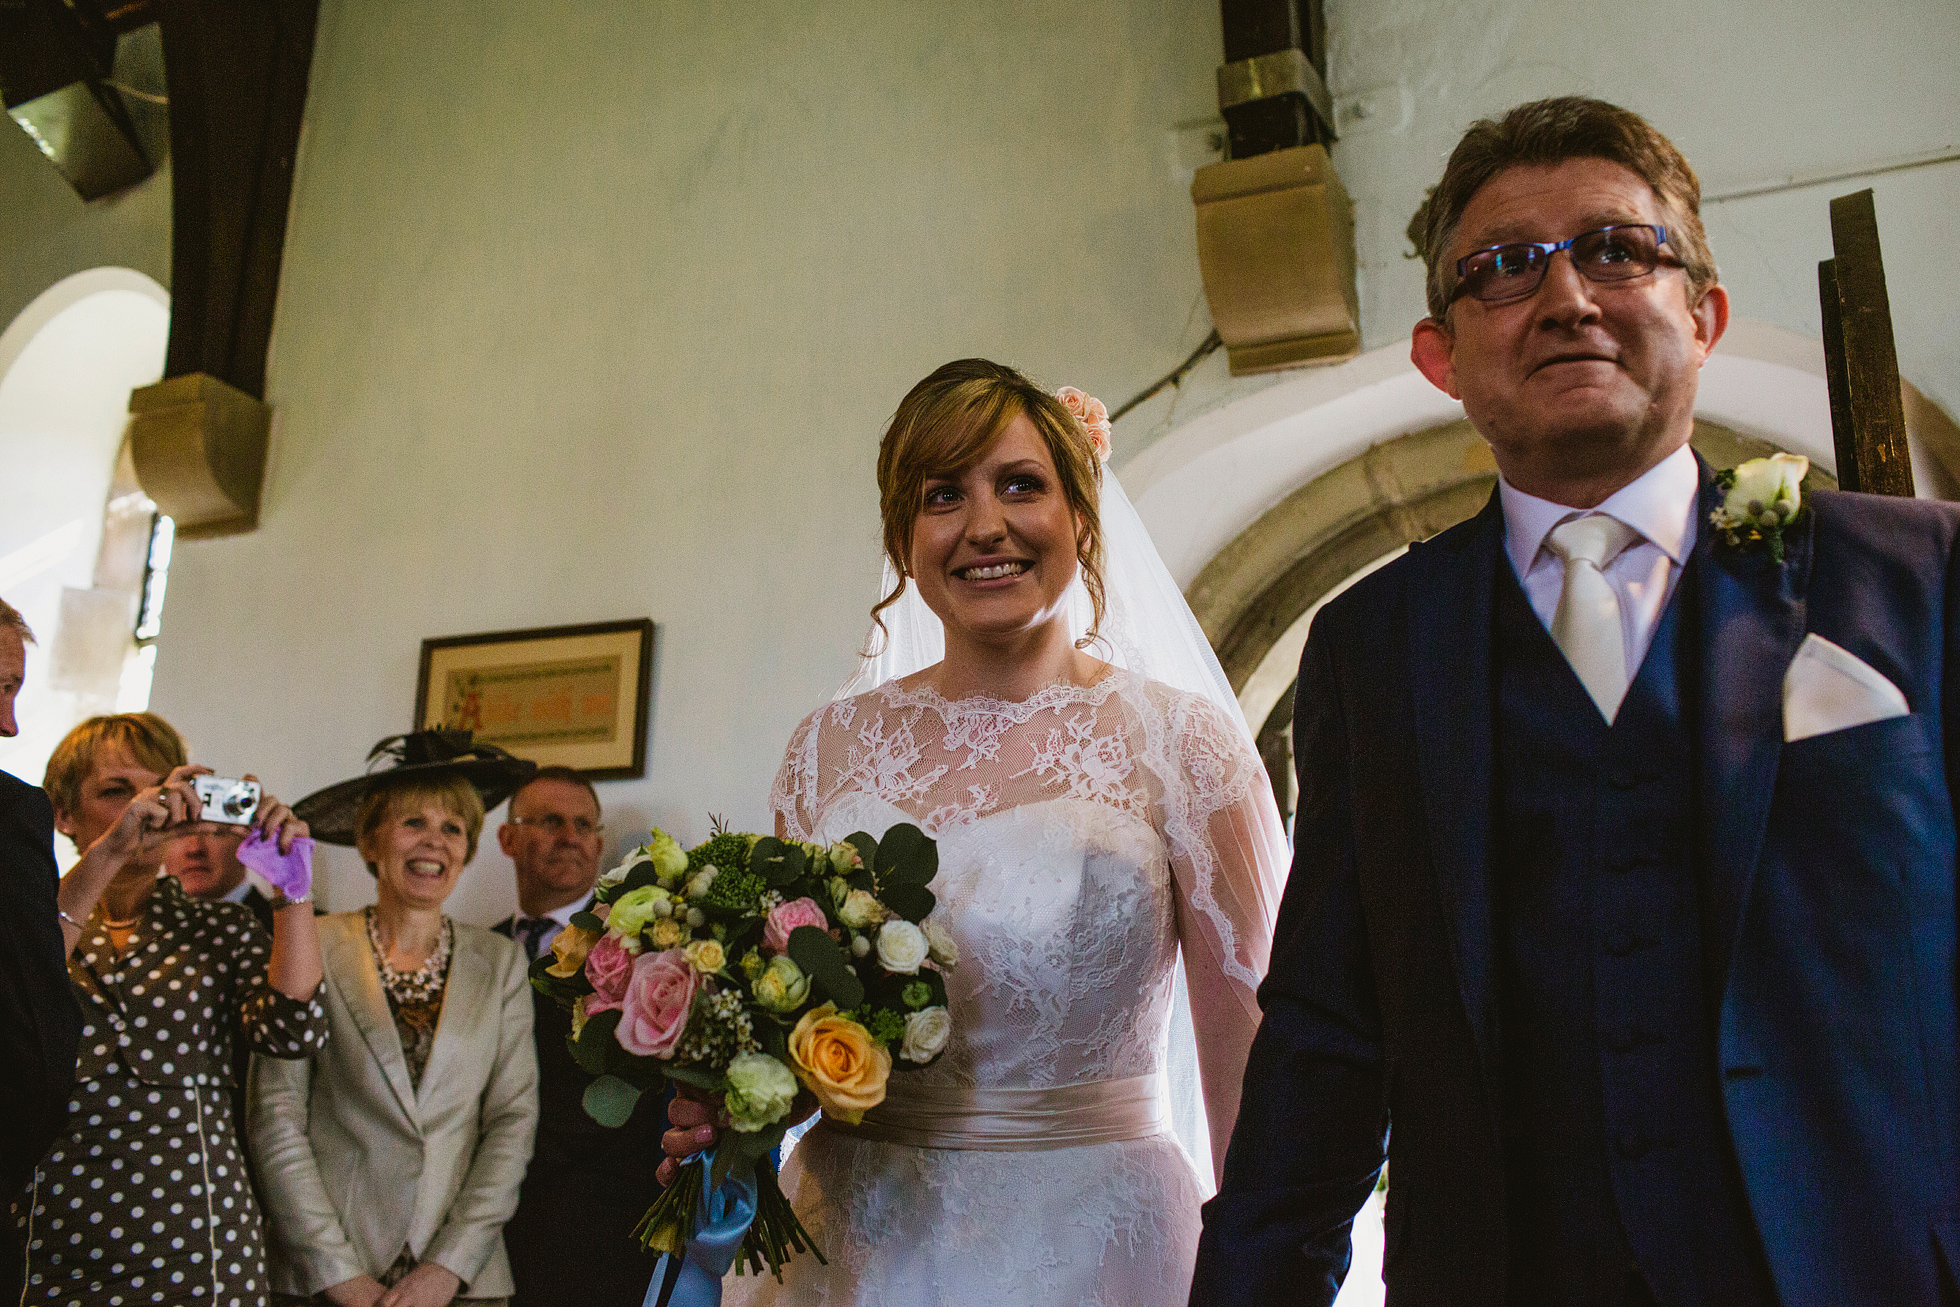 UK Wedding Photography with the Leica M